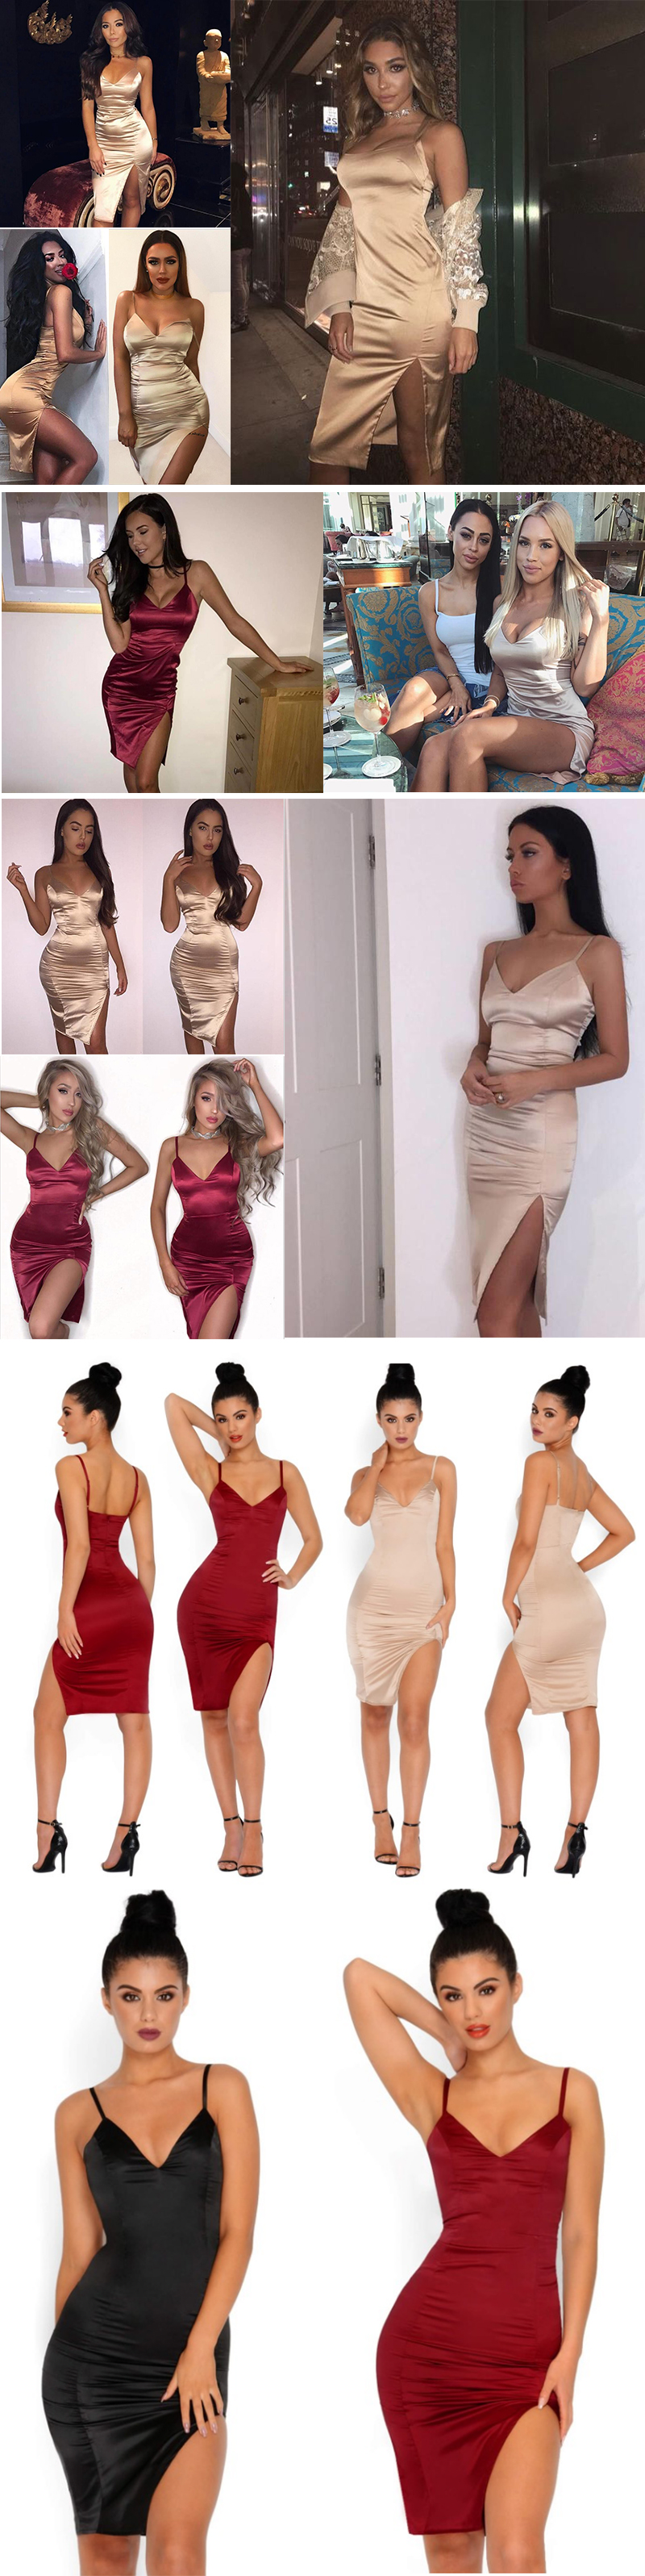 HTB1haV2PVXXXXabapXXq6xXFXXX7 - FREE SHIPPING Sexy Bodycon Dress Women Deep V-Neck Off Shoulder JKP243